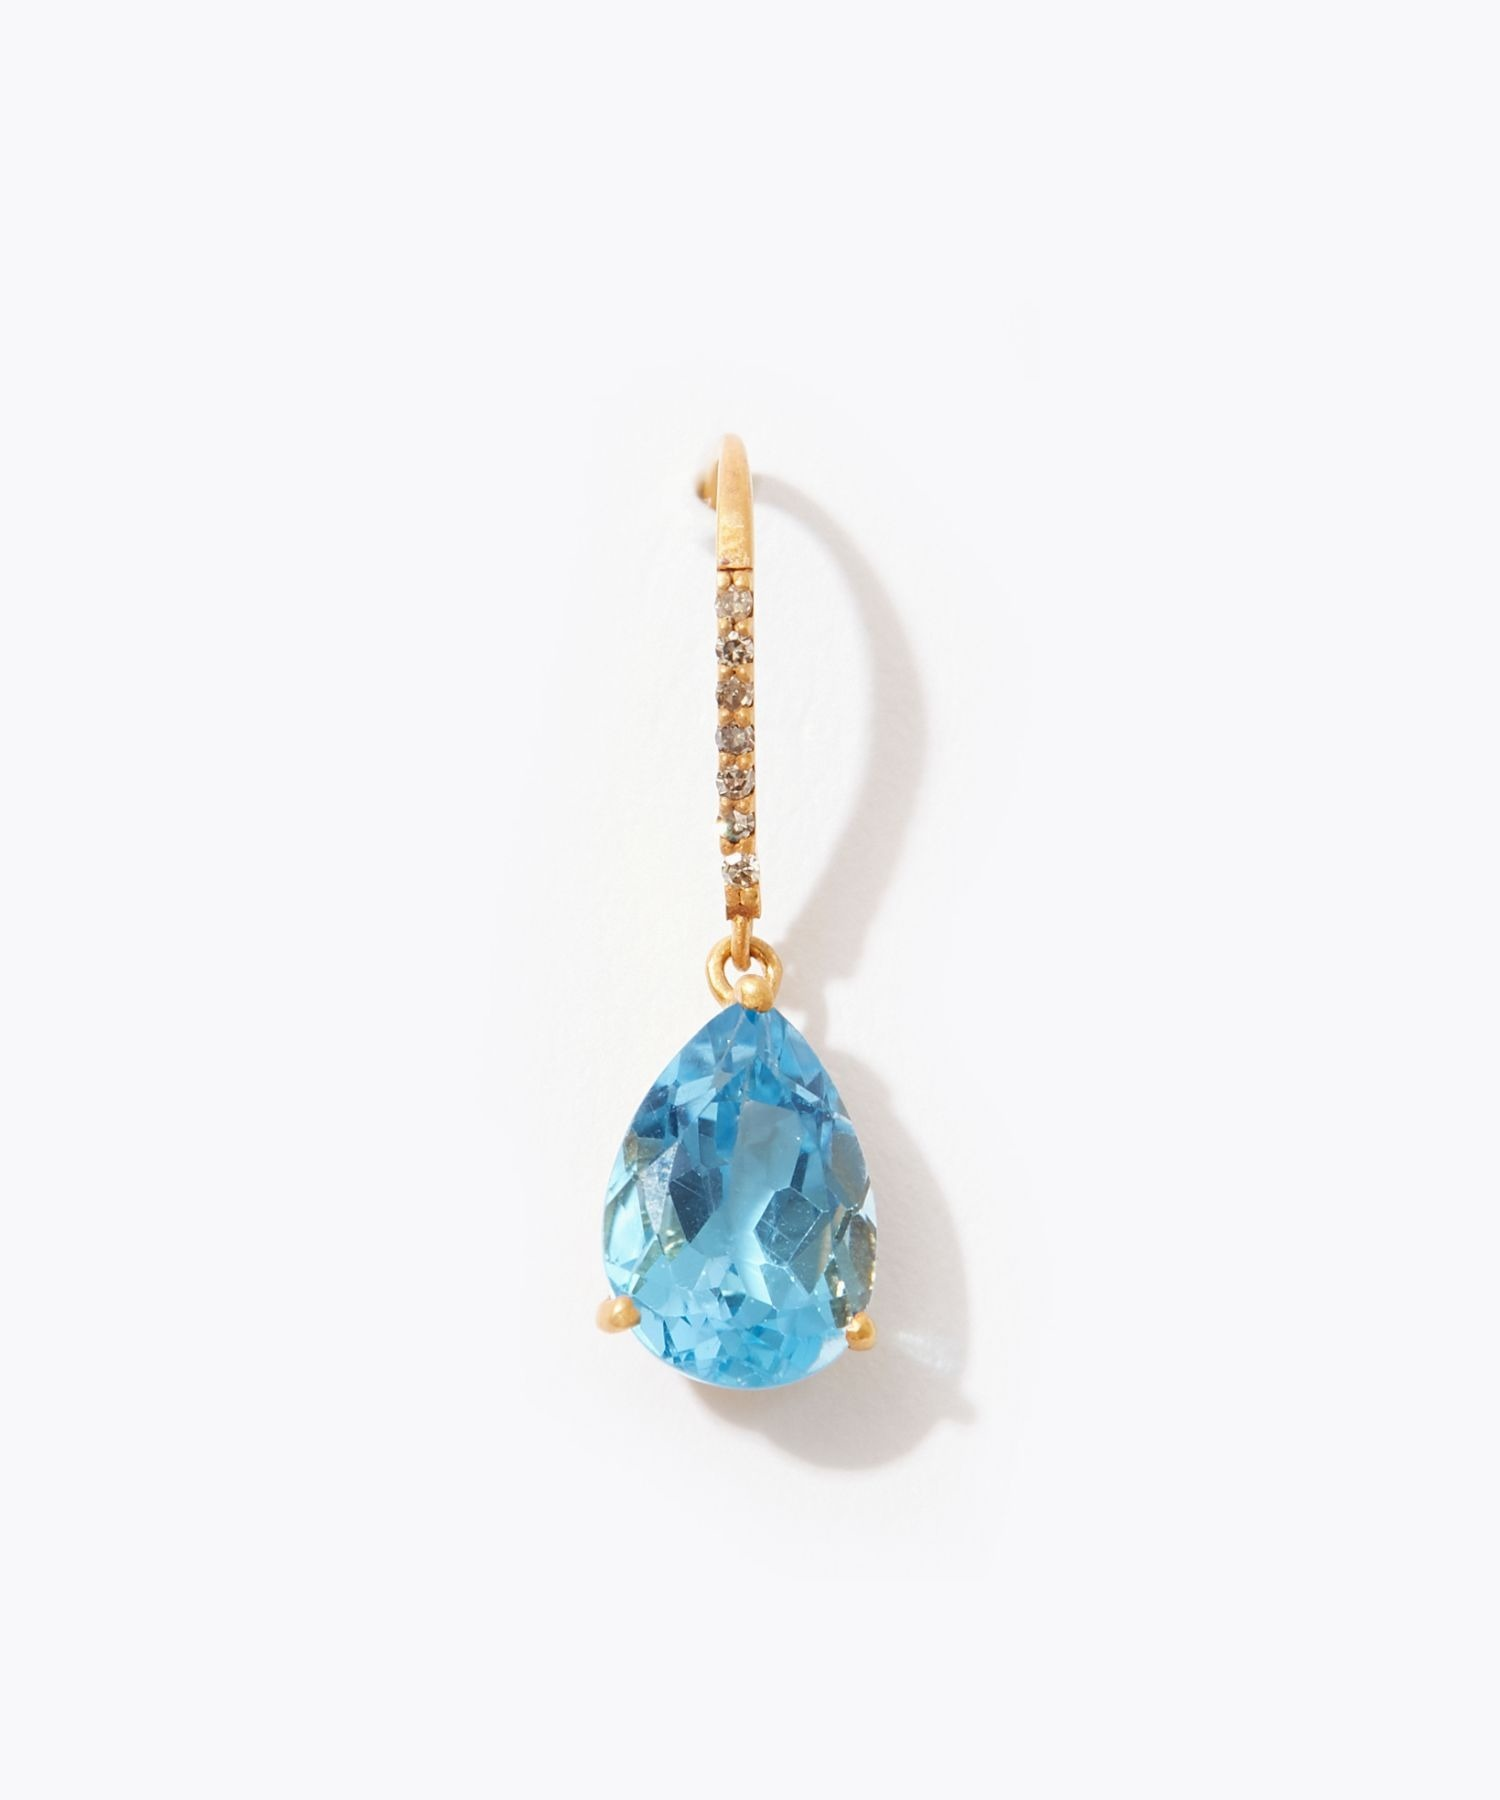 [eden] K10 pear shape blue topaz pave diamond pierced earring